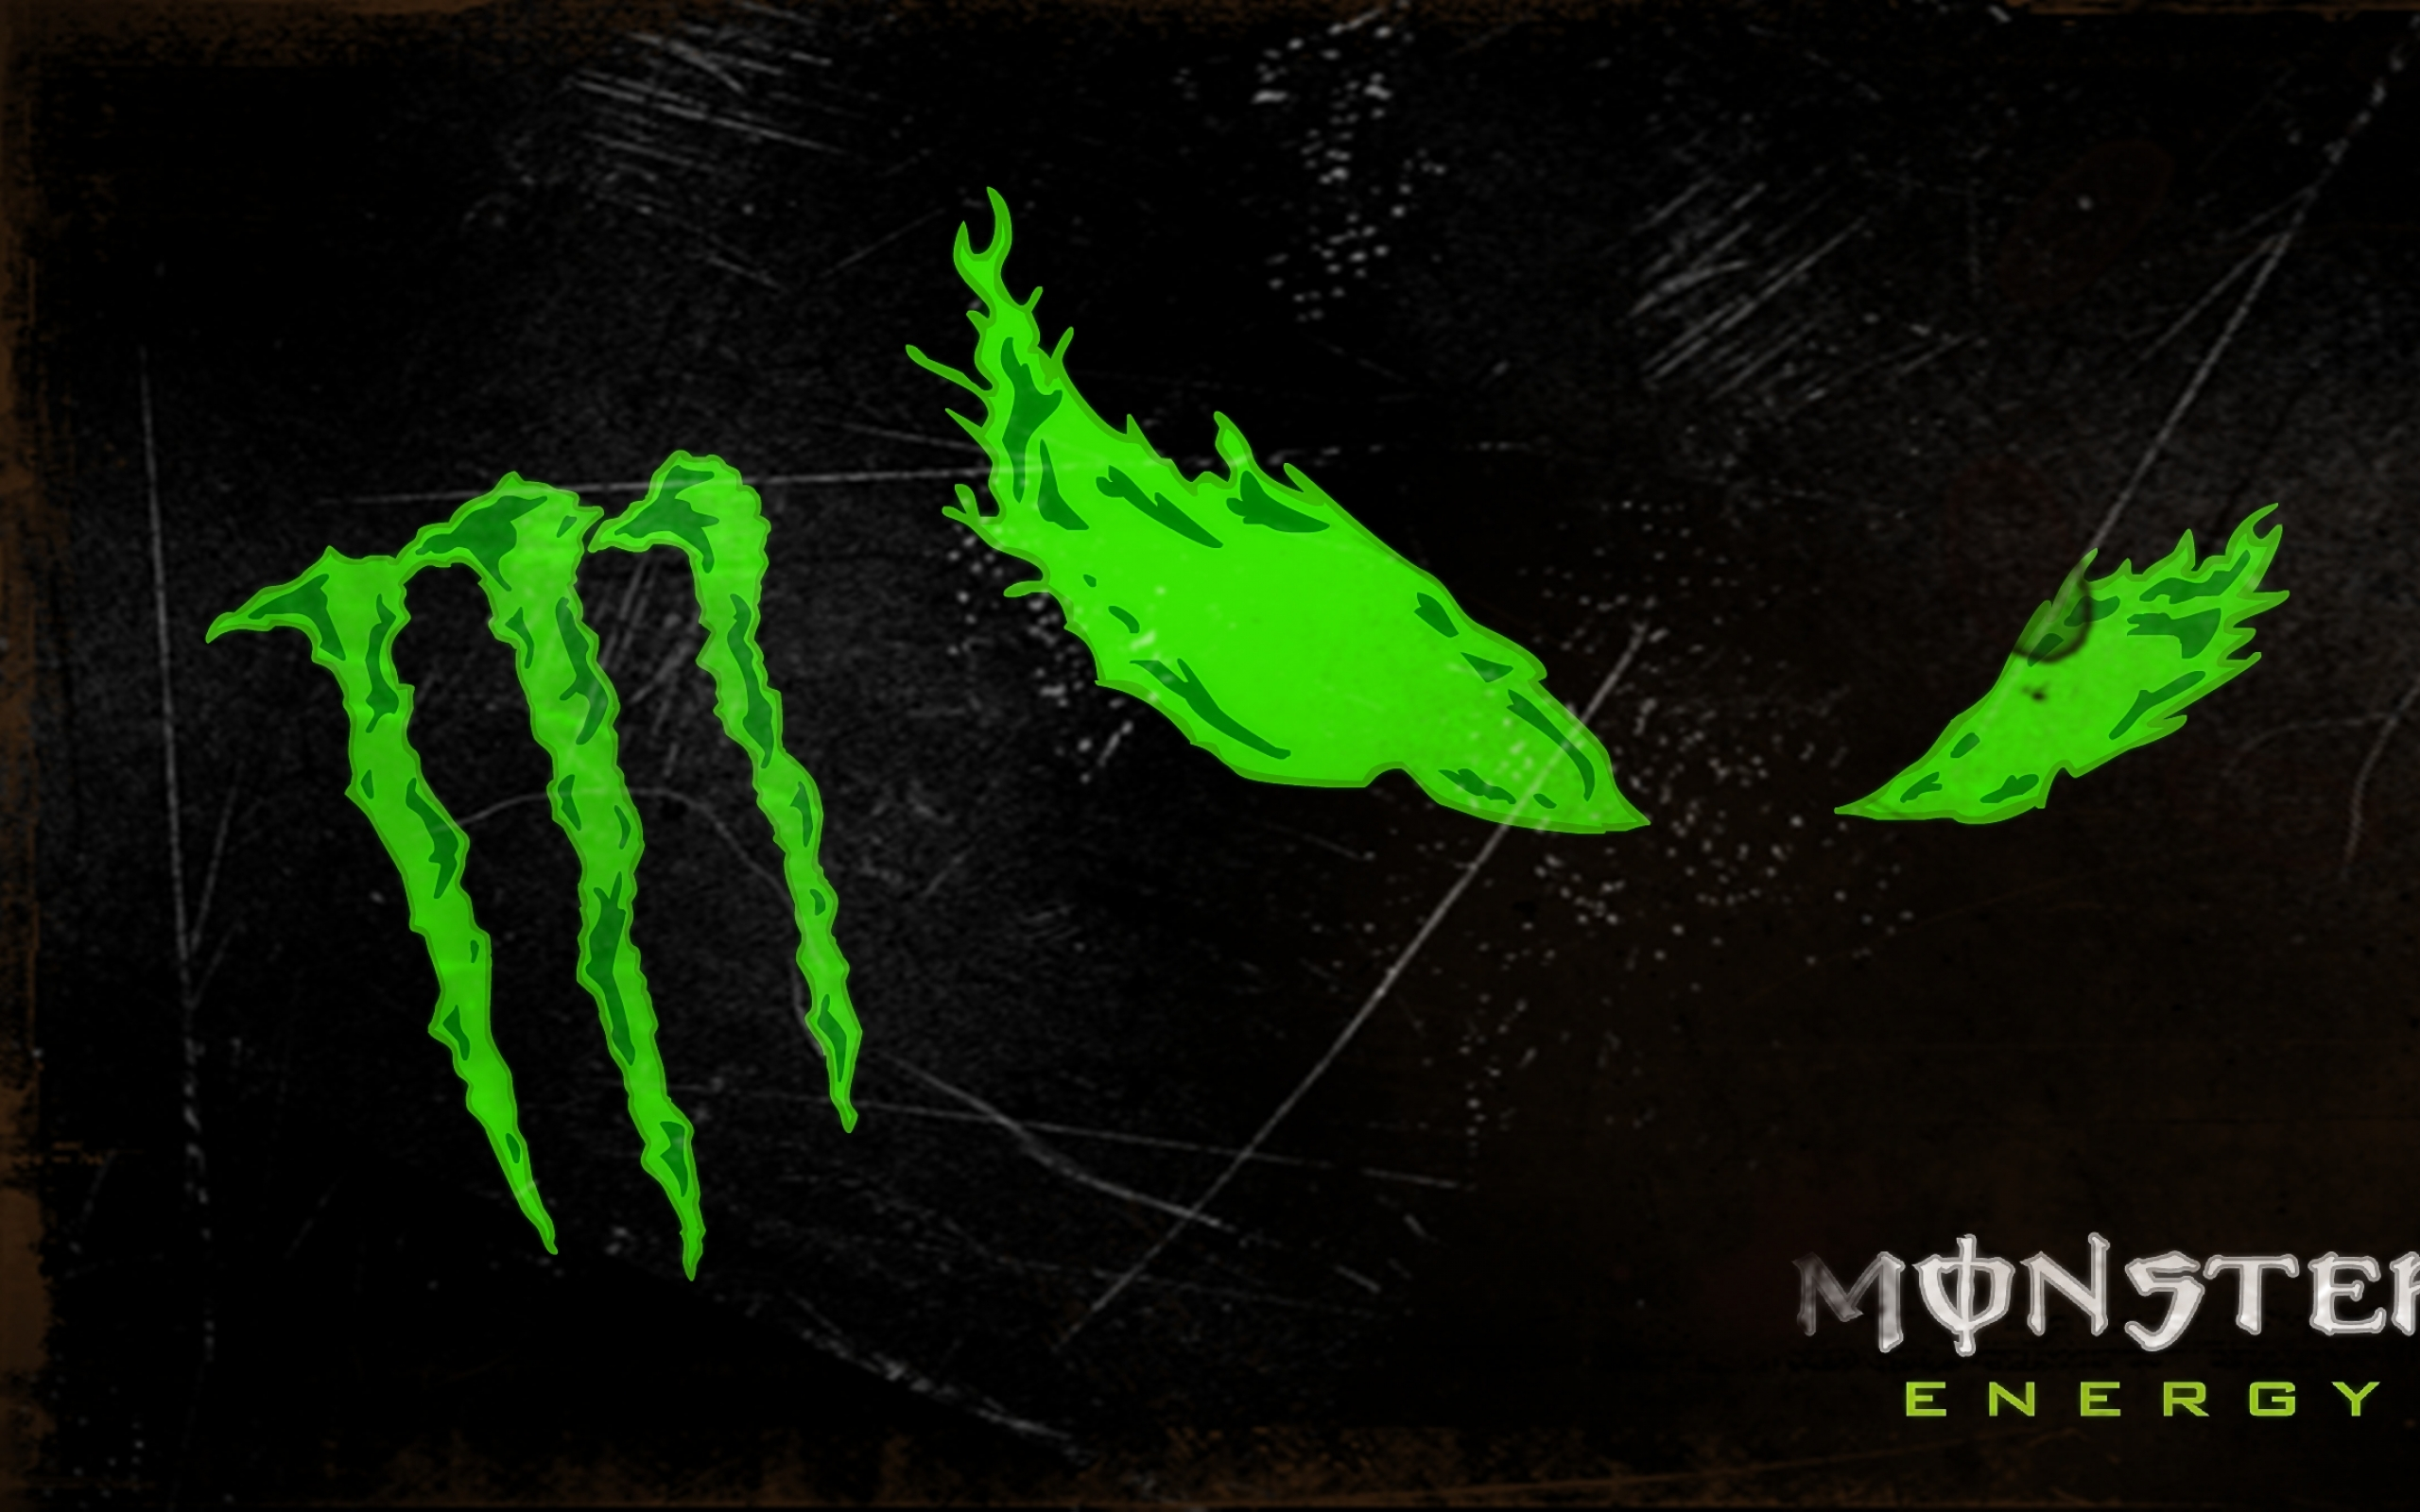 2560x1600 monster energy 2560x1440 wallpaper Art HD Wallpaper download 2560x1600